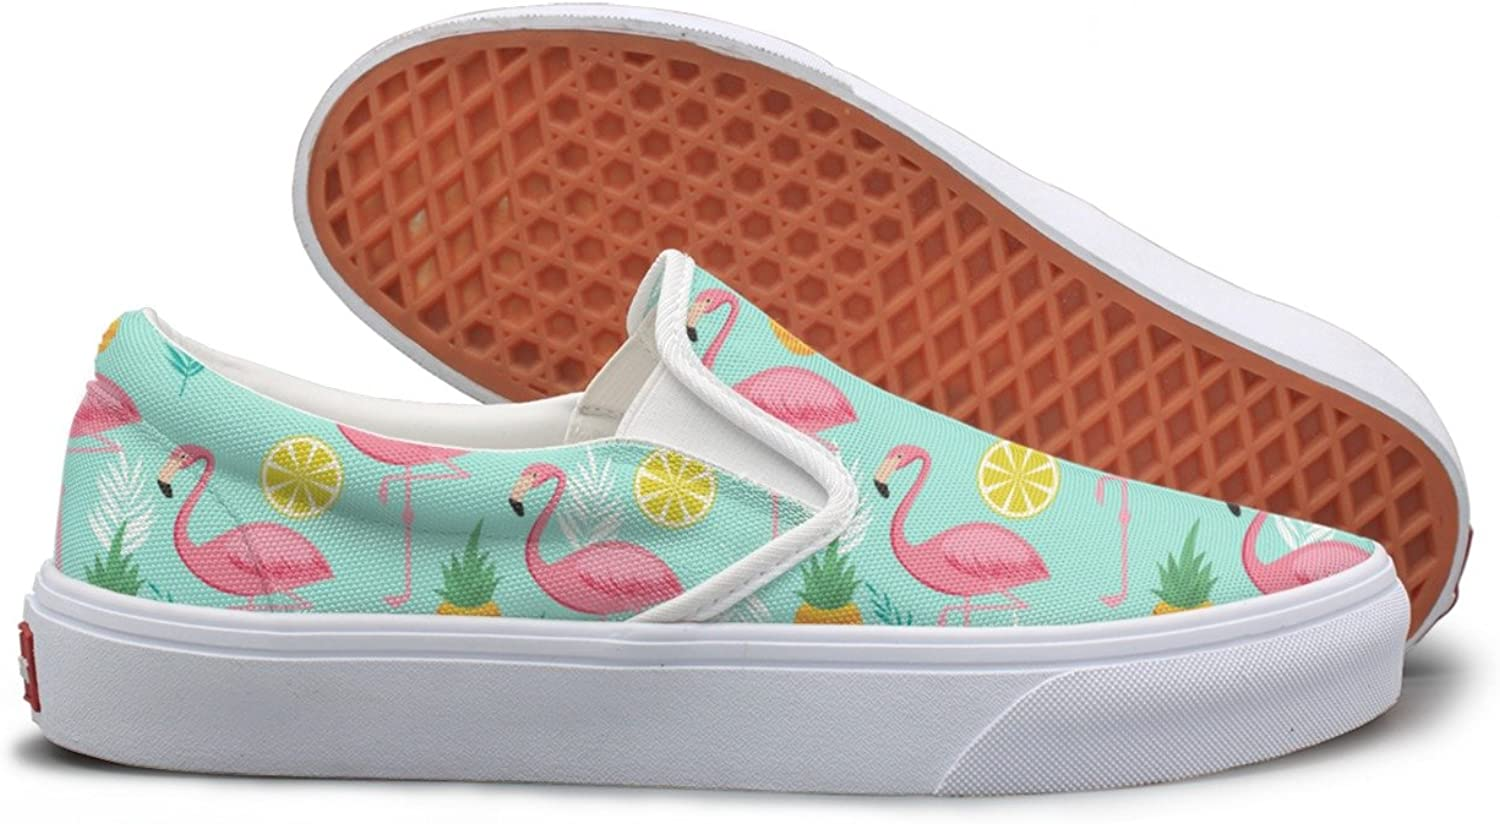 SEERTED Pink Flamingo Pineapples and Exotic Leaves Comfortable Sneakers for Standing All Day